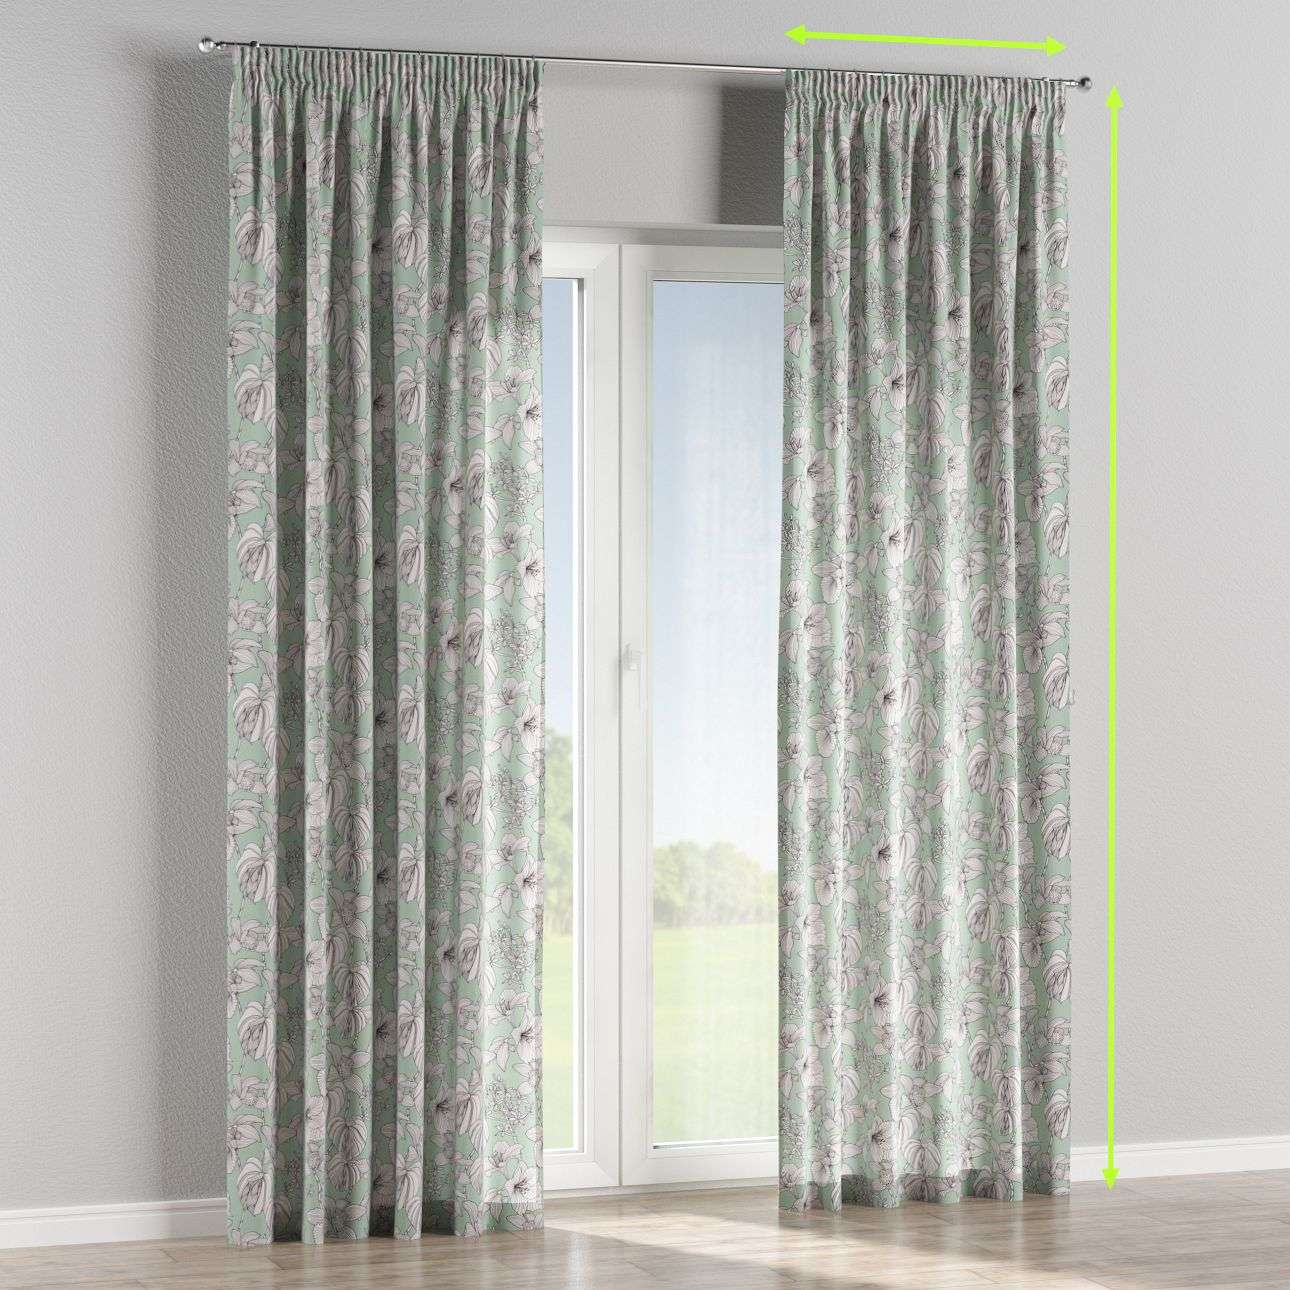 Pencil pleat curtains in collection Brooklyn, fabric: 137-76